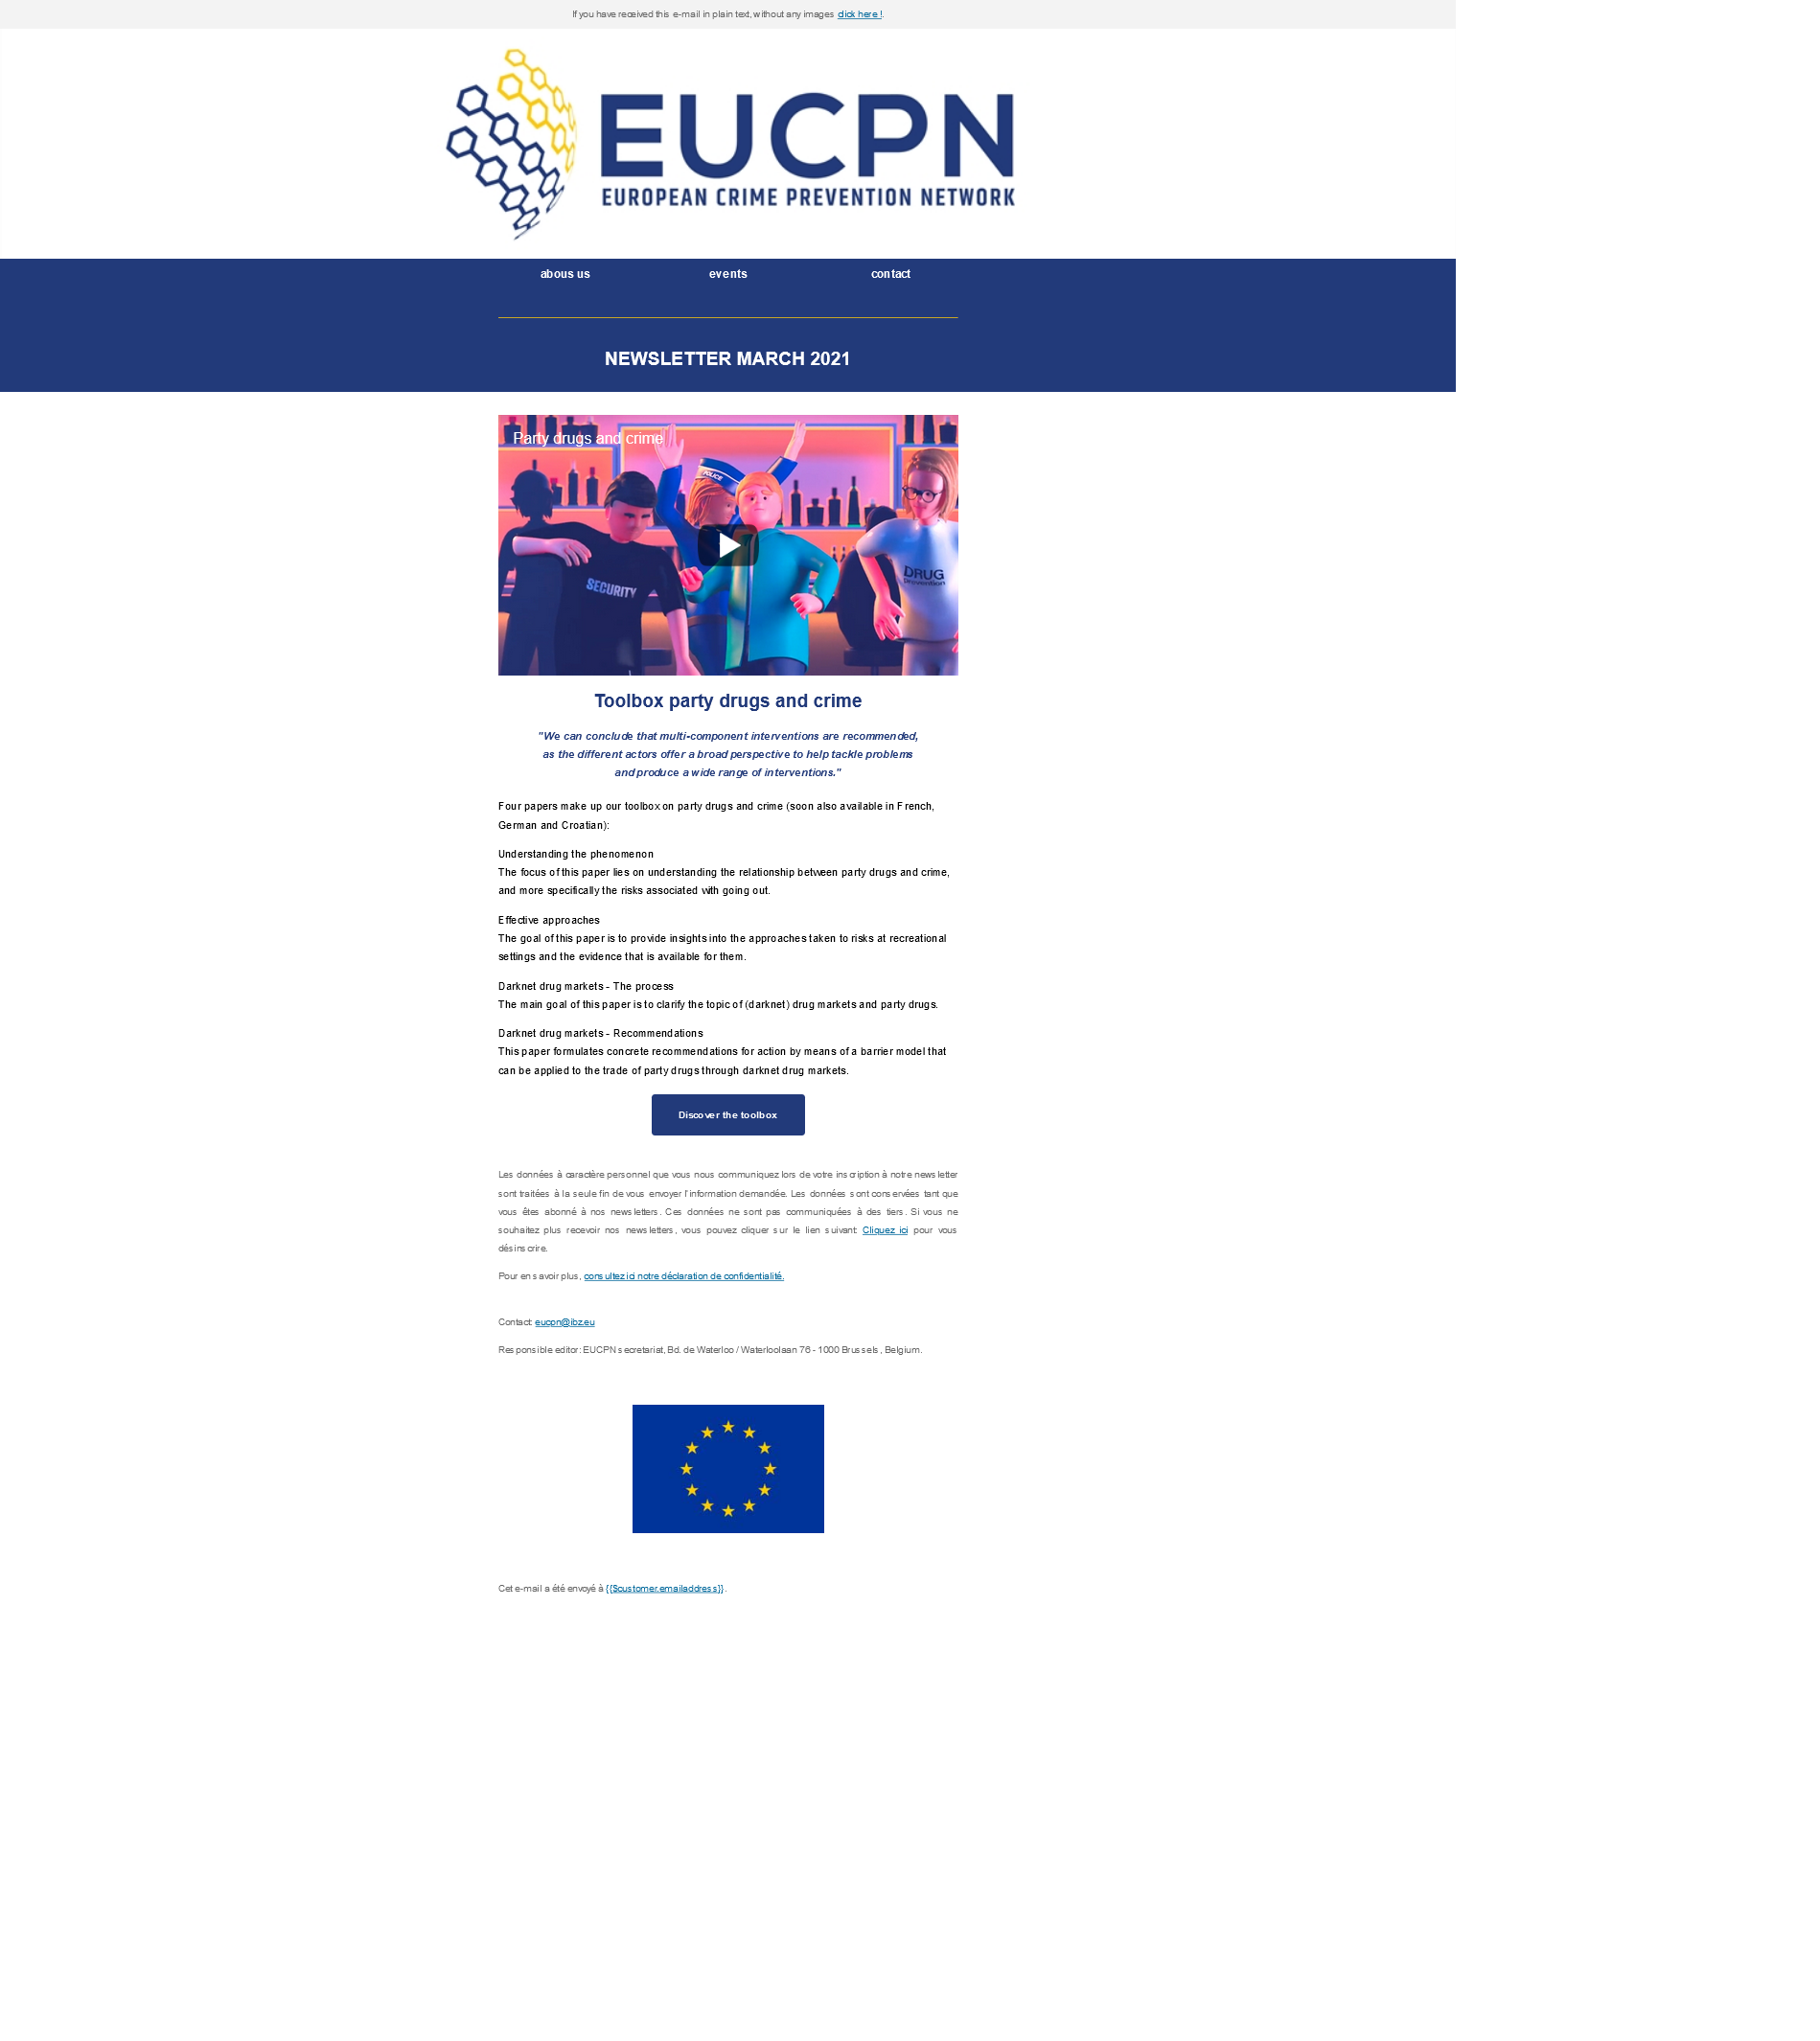 EUCPN Newsletter March 2021